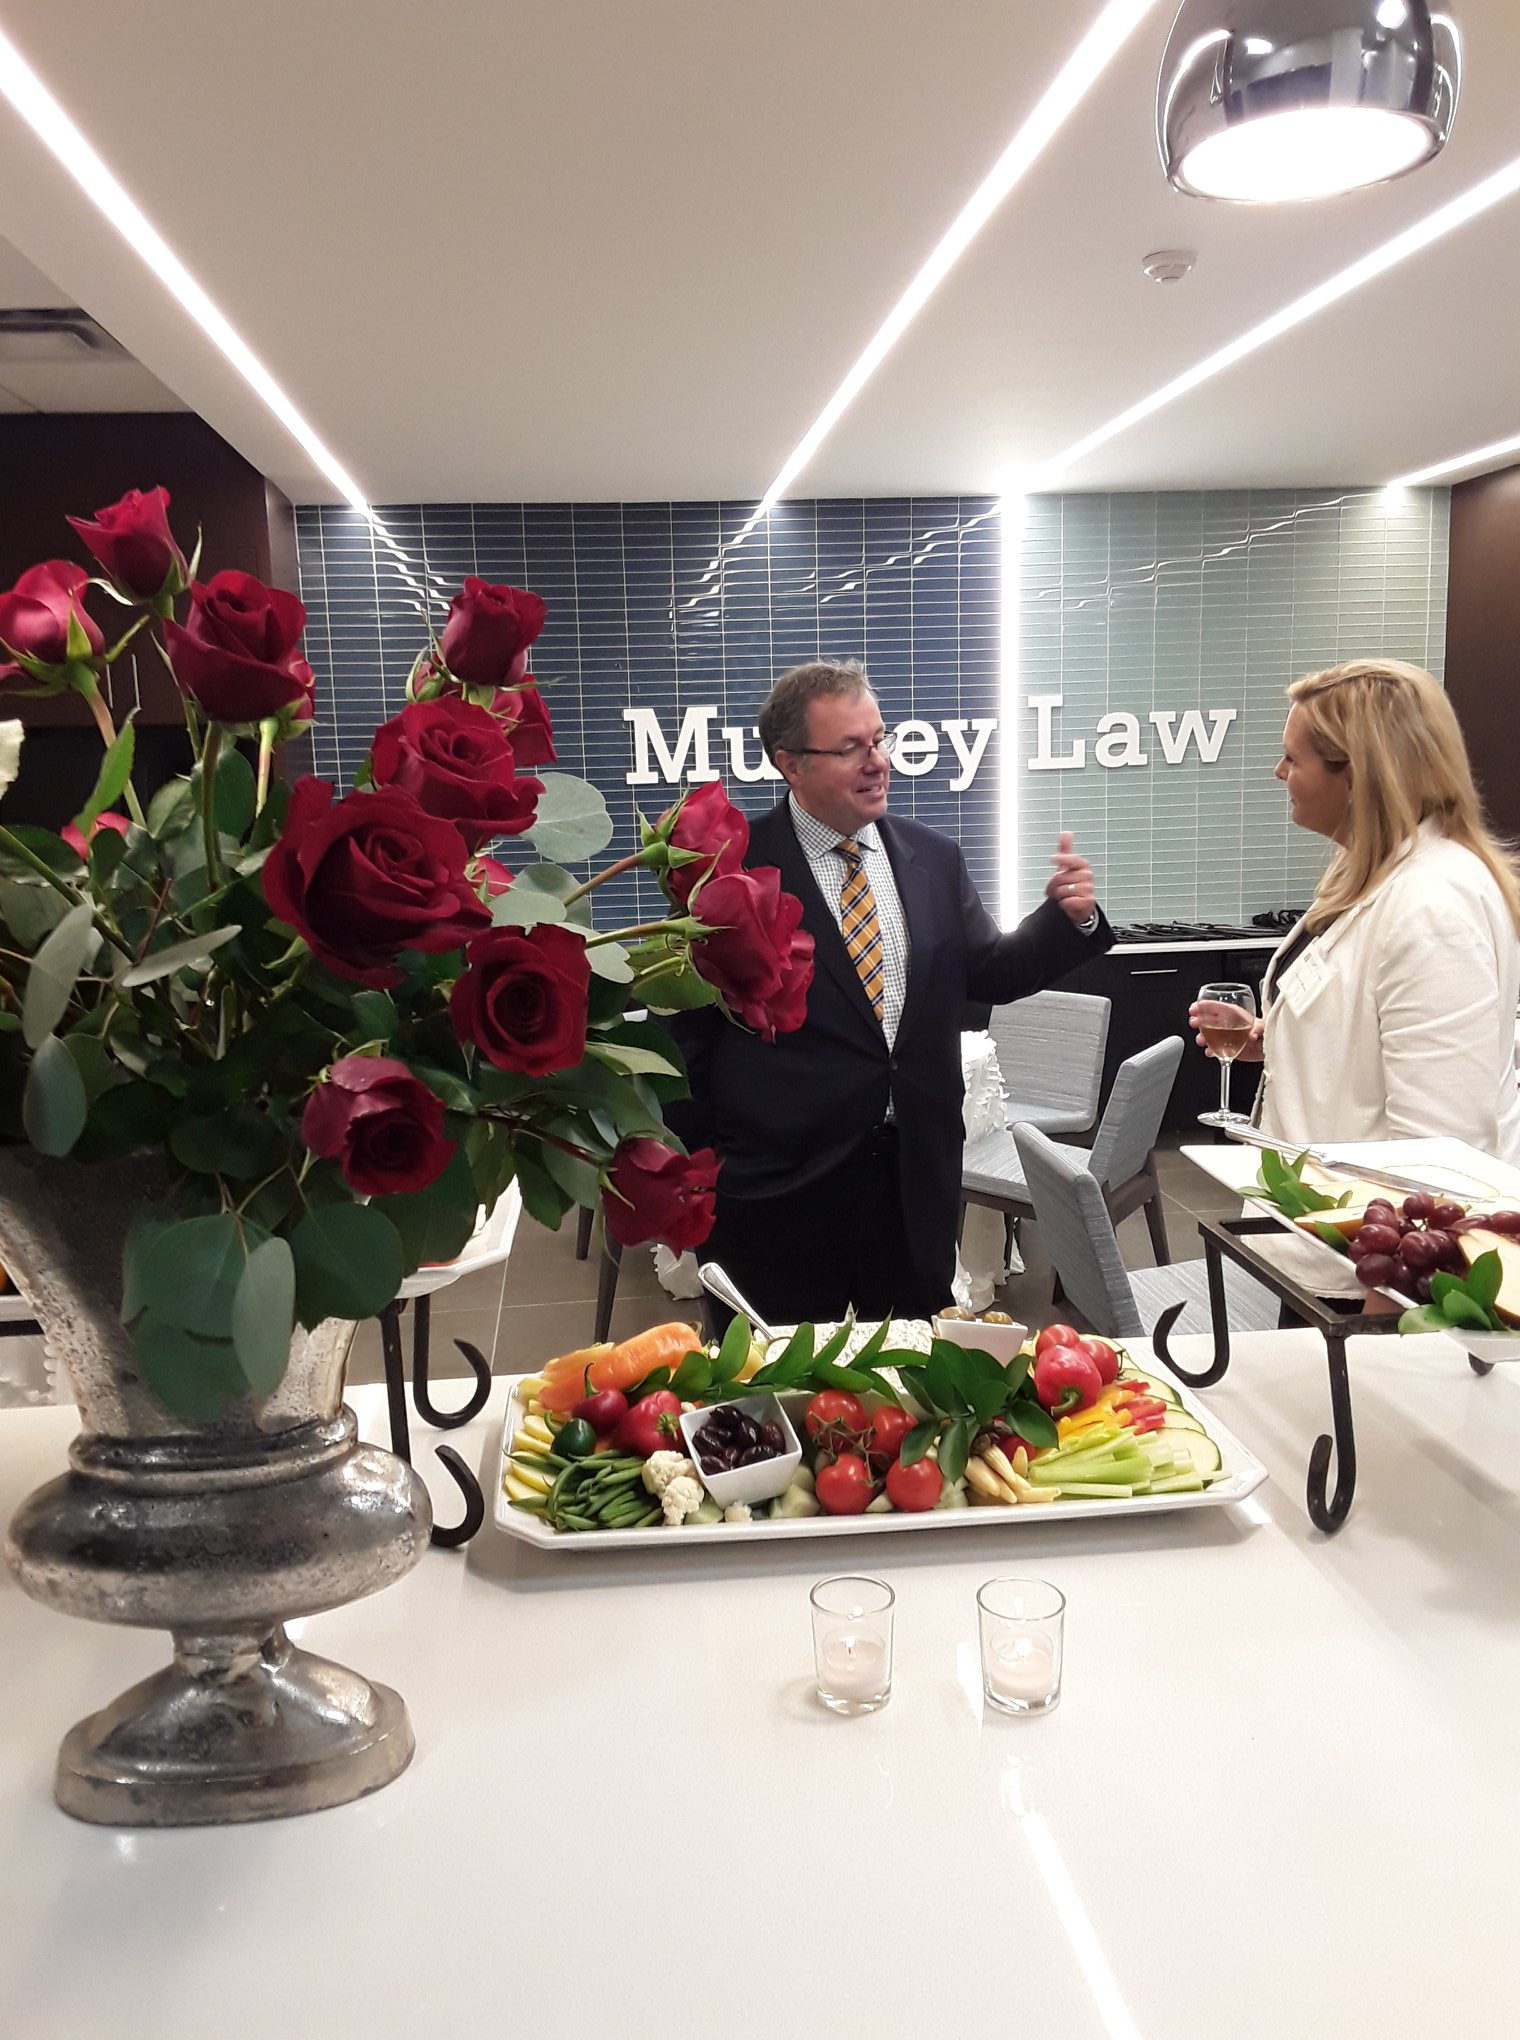 Casual Collisions at Munley Law Offices demonstrate another reason we can't wait to return to the workplace.